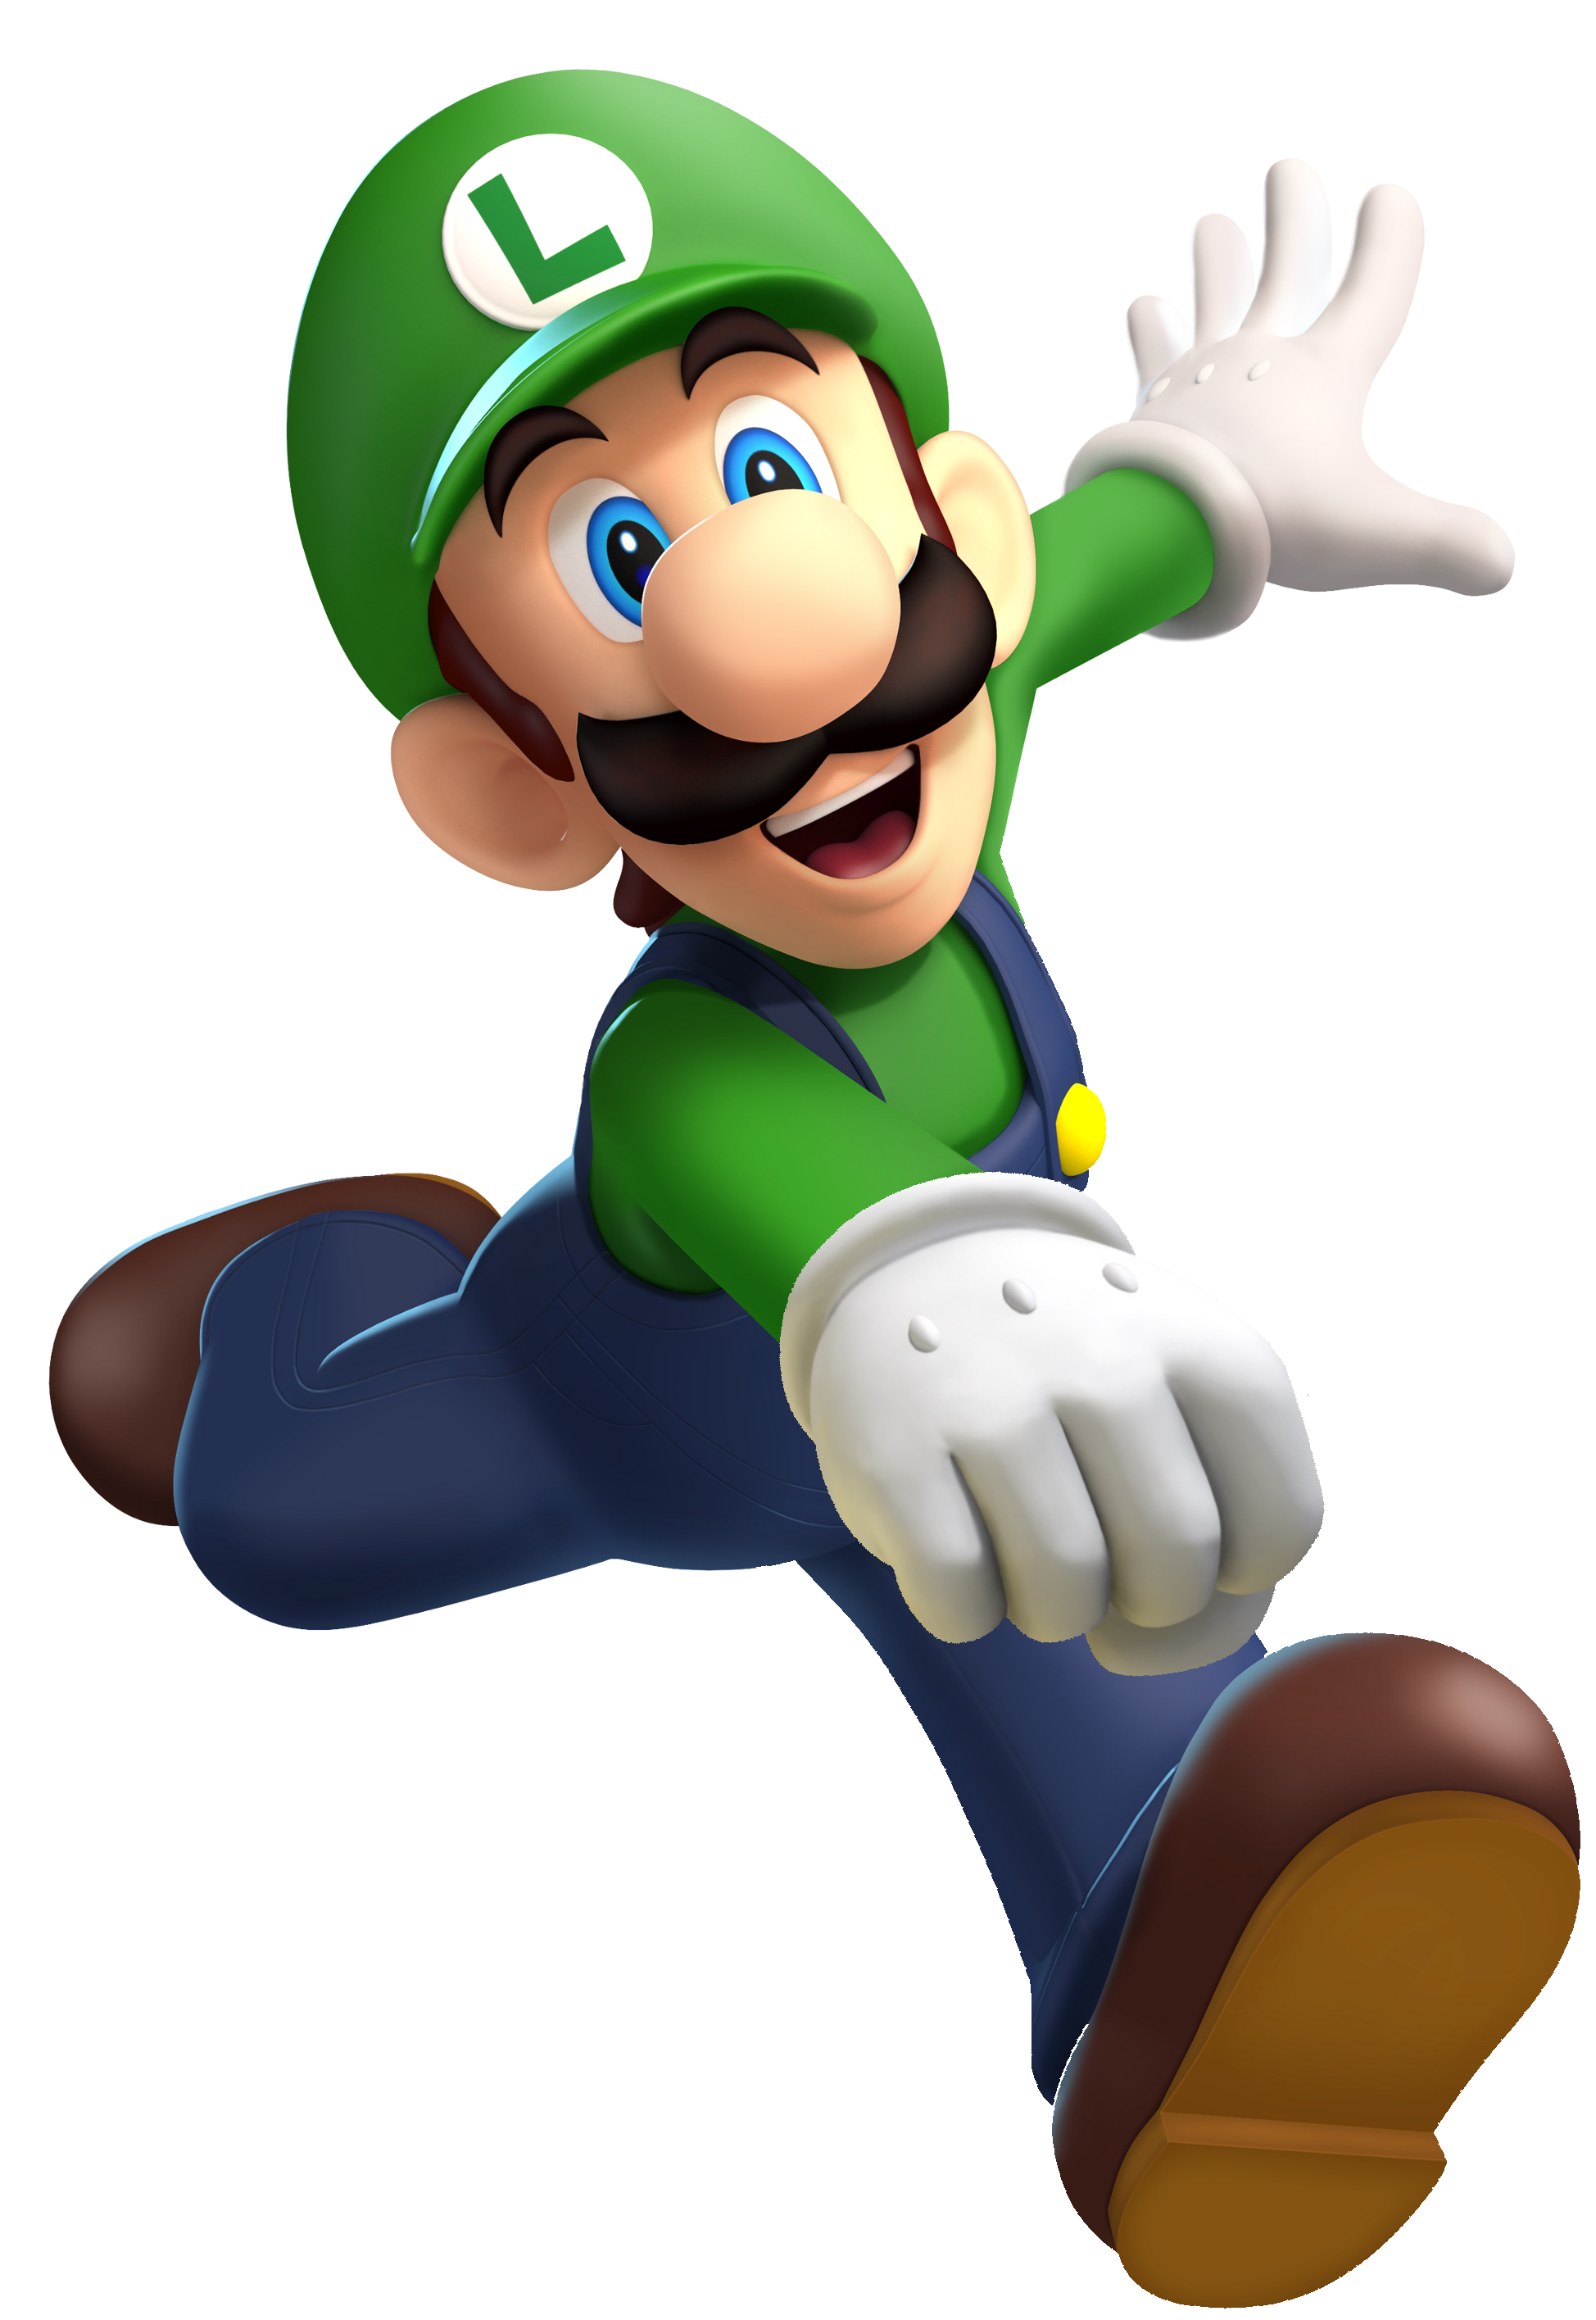 Luigi Backgrounds, Compatible - PC, Mobile, Gadgets| 1948x2831 px